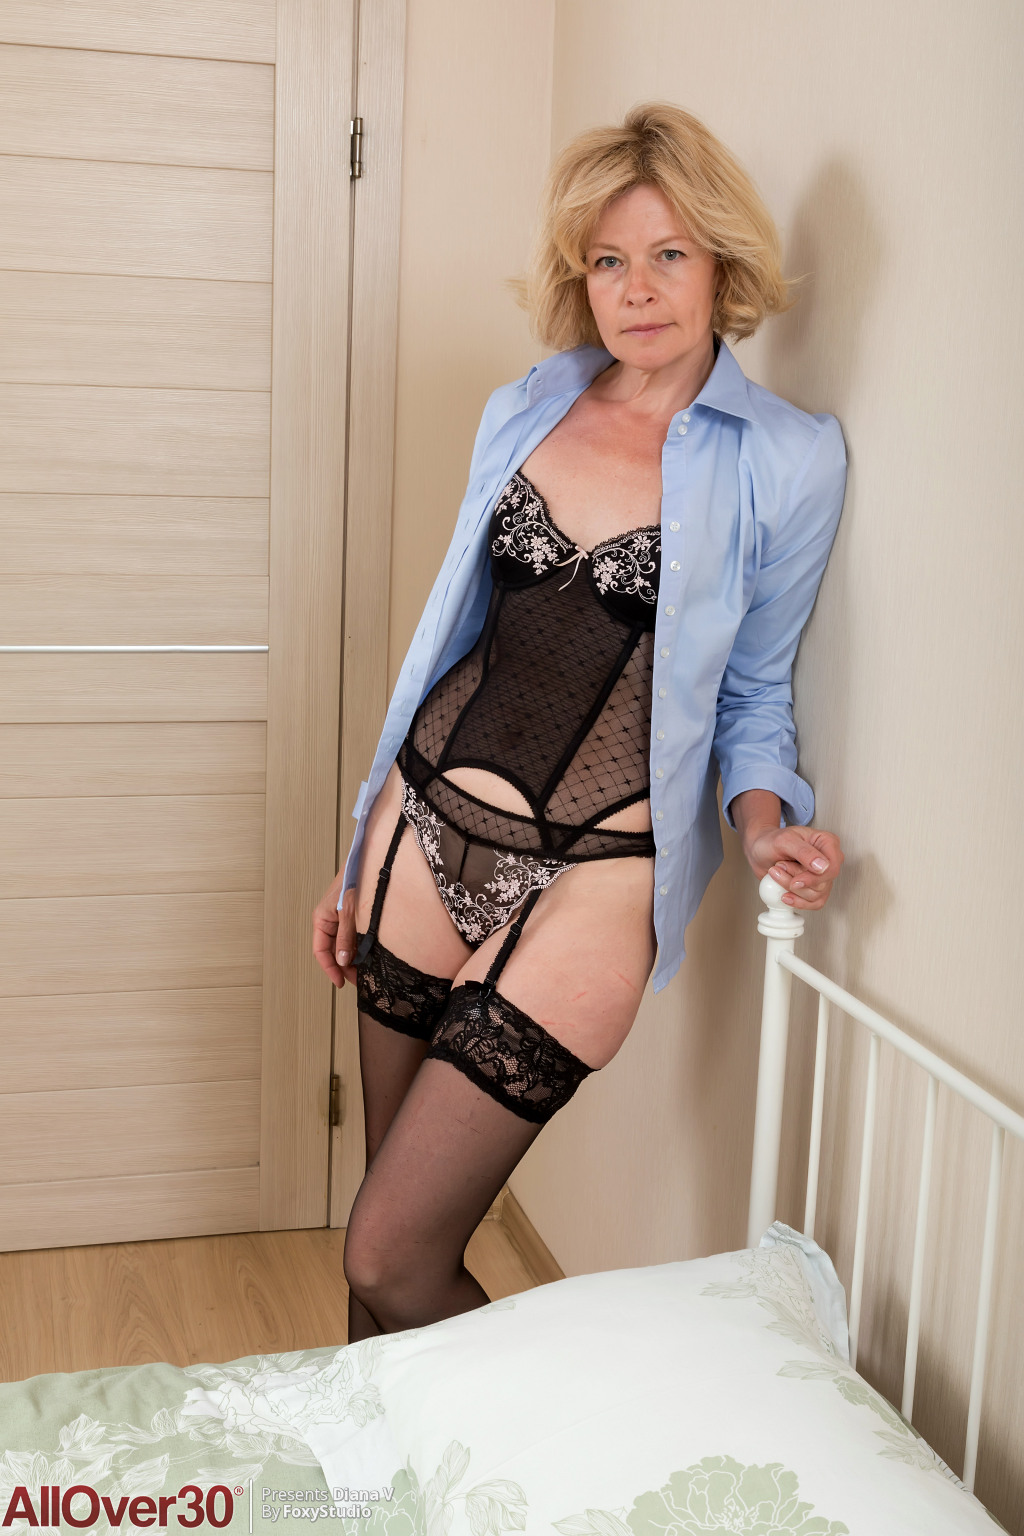 Mature Women In Lingerie Pictures